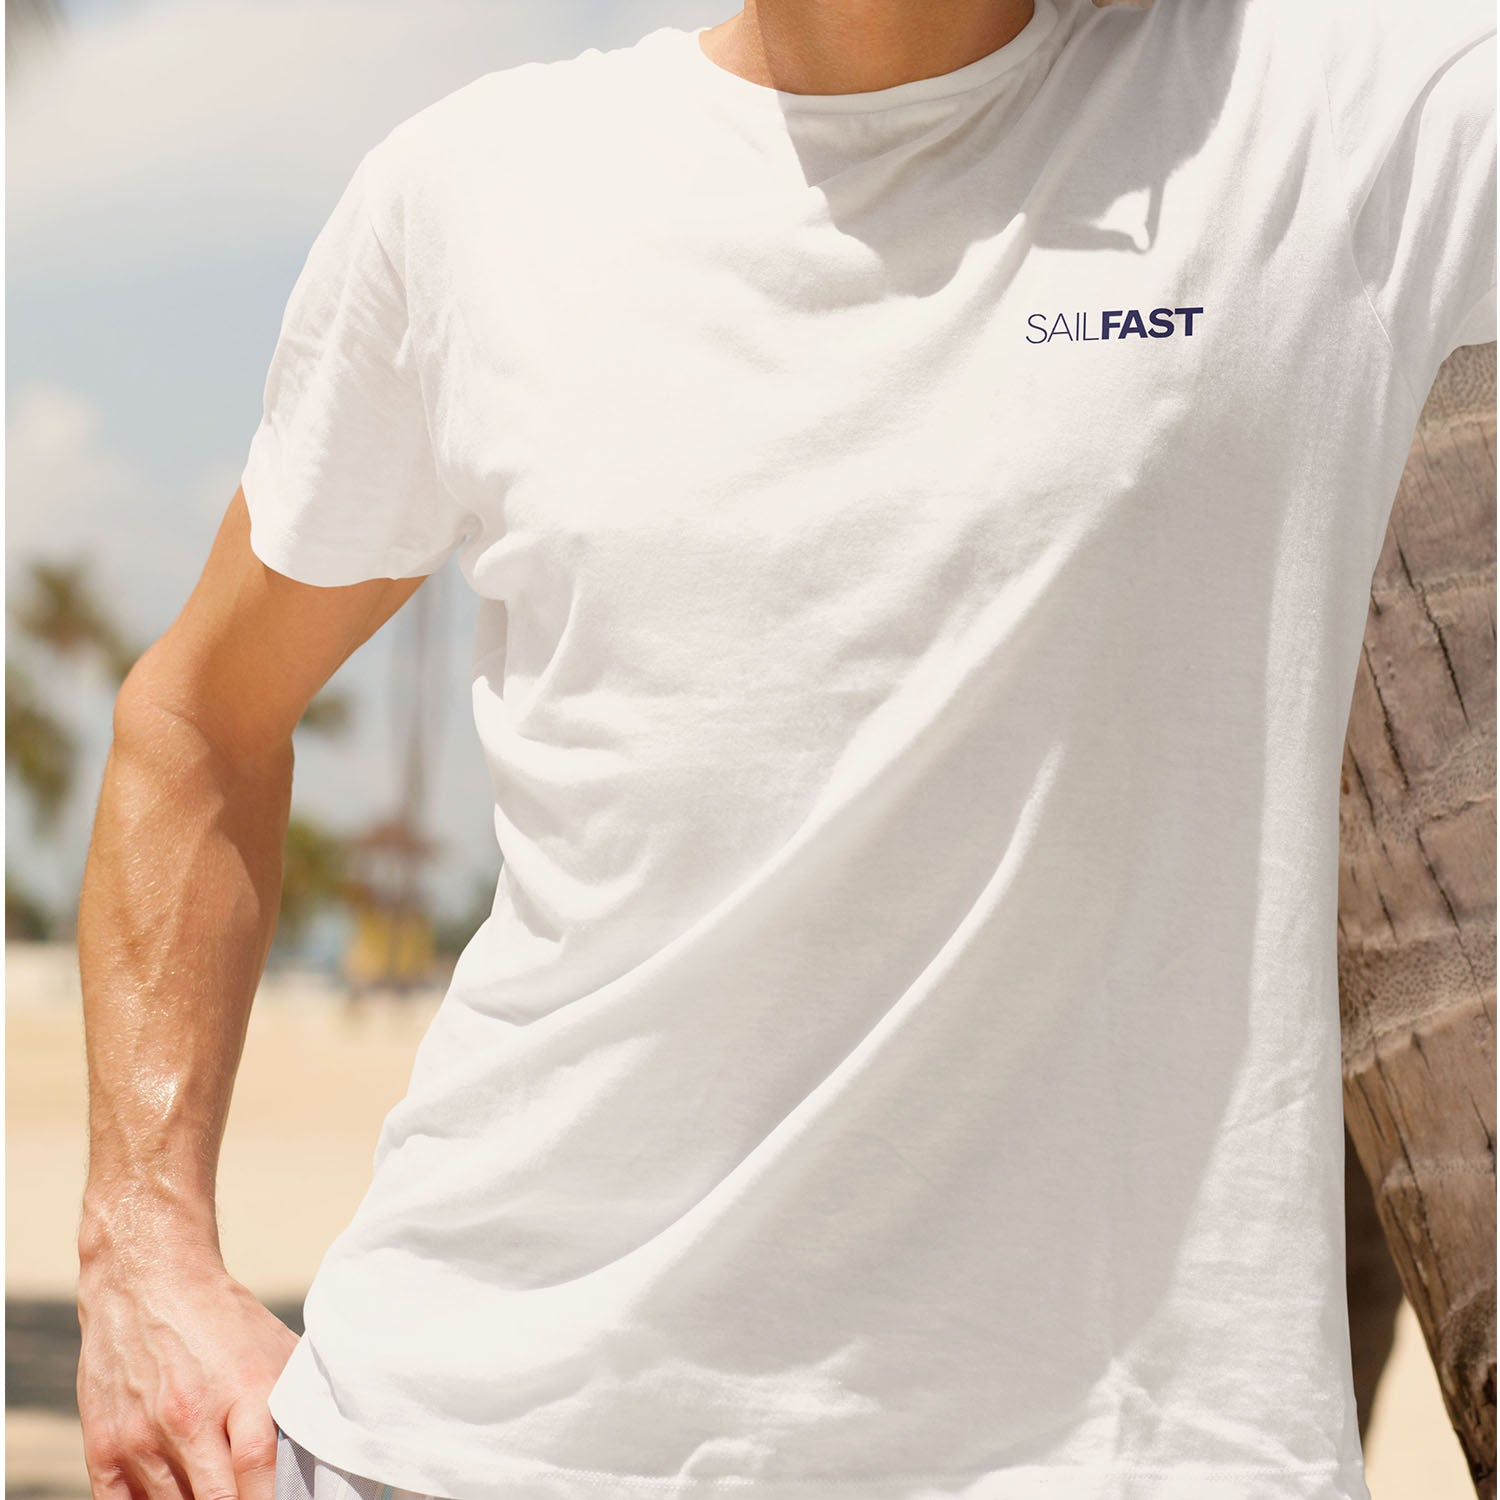 https://sailfast-apparel.myshopify.com/admin/themes/153601097/editor#/collections/accessories/products/sailfast-classic-hat